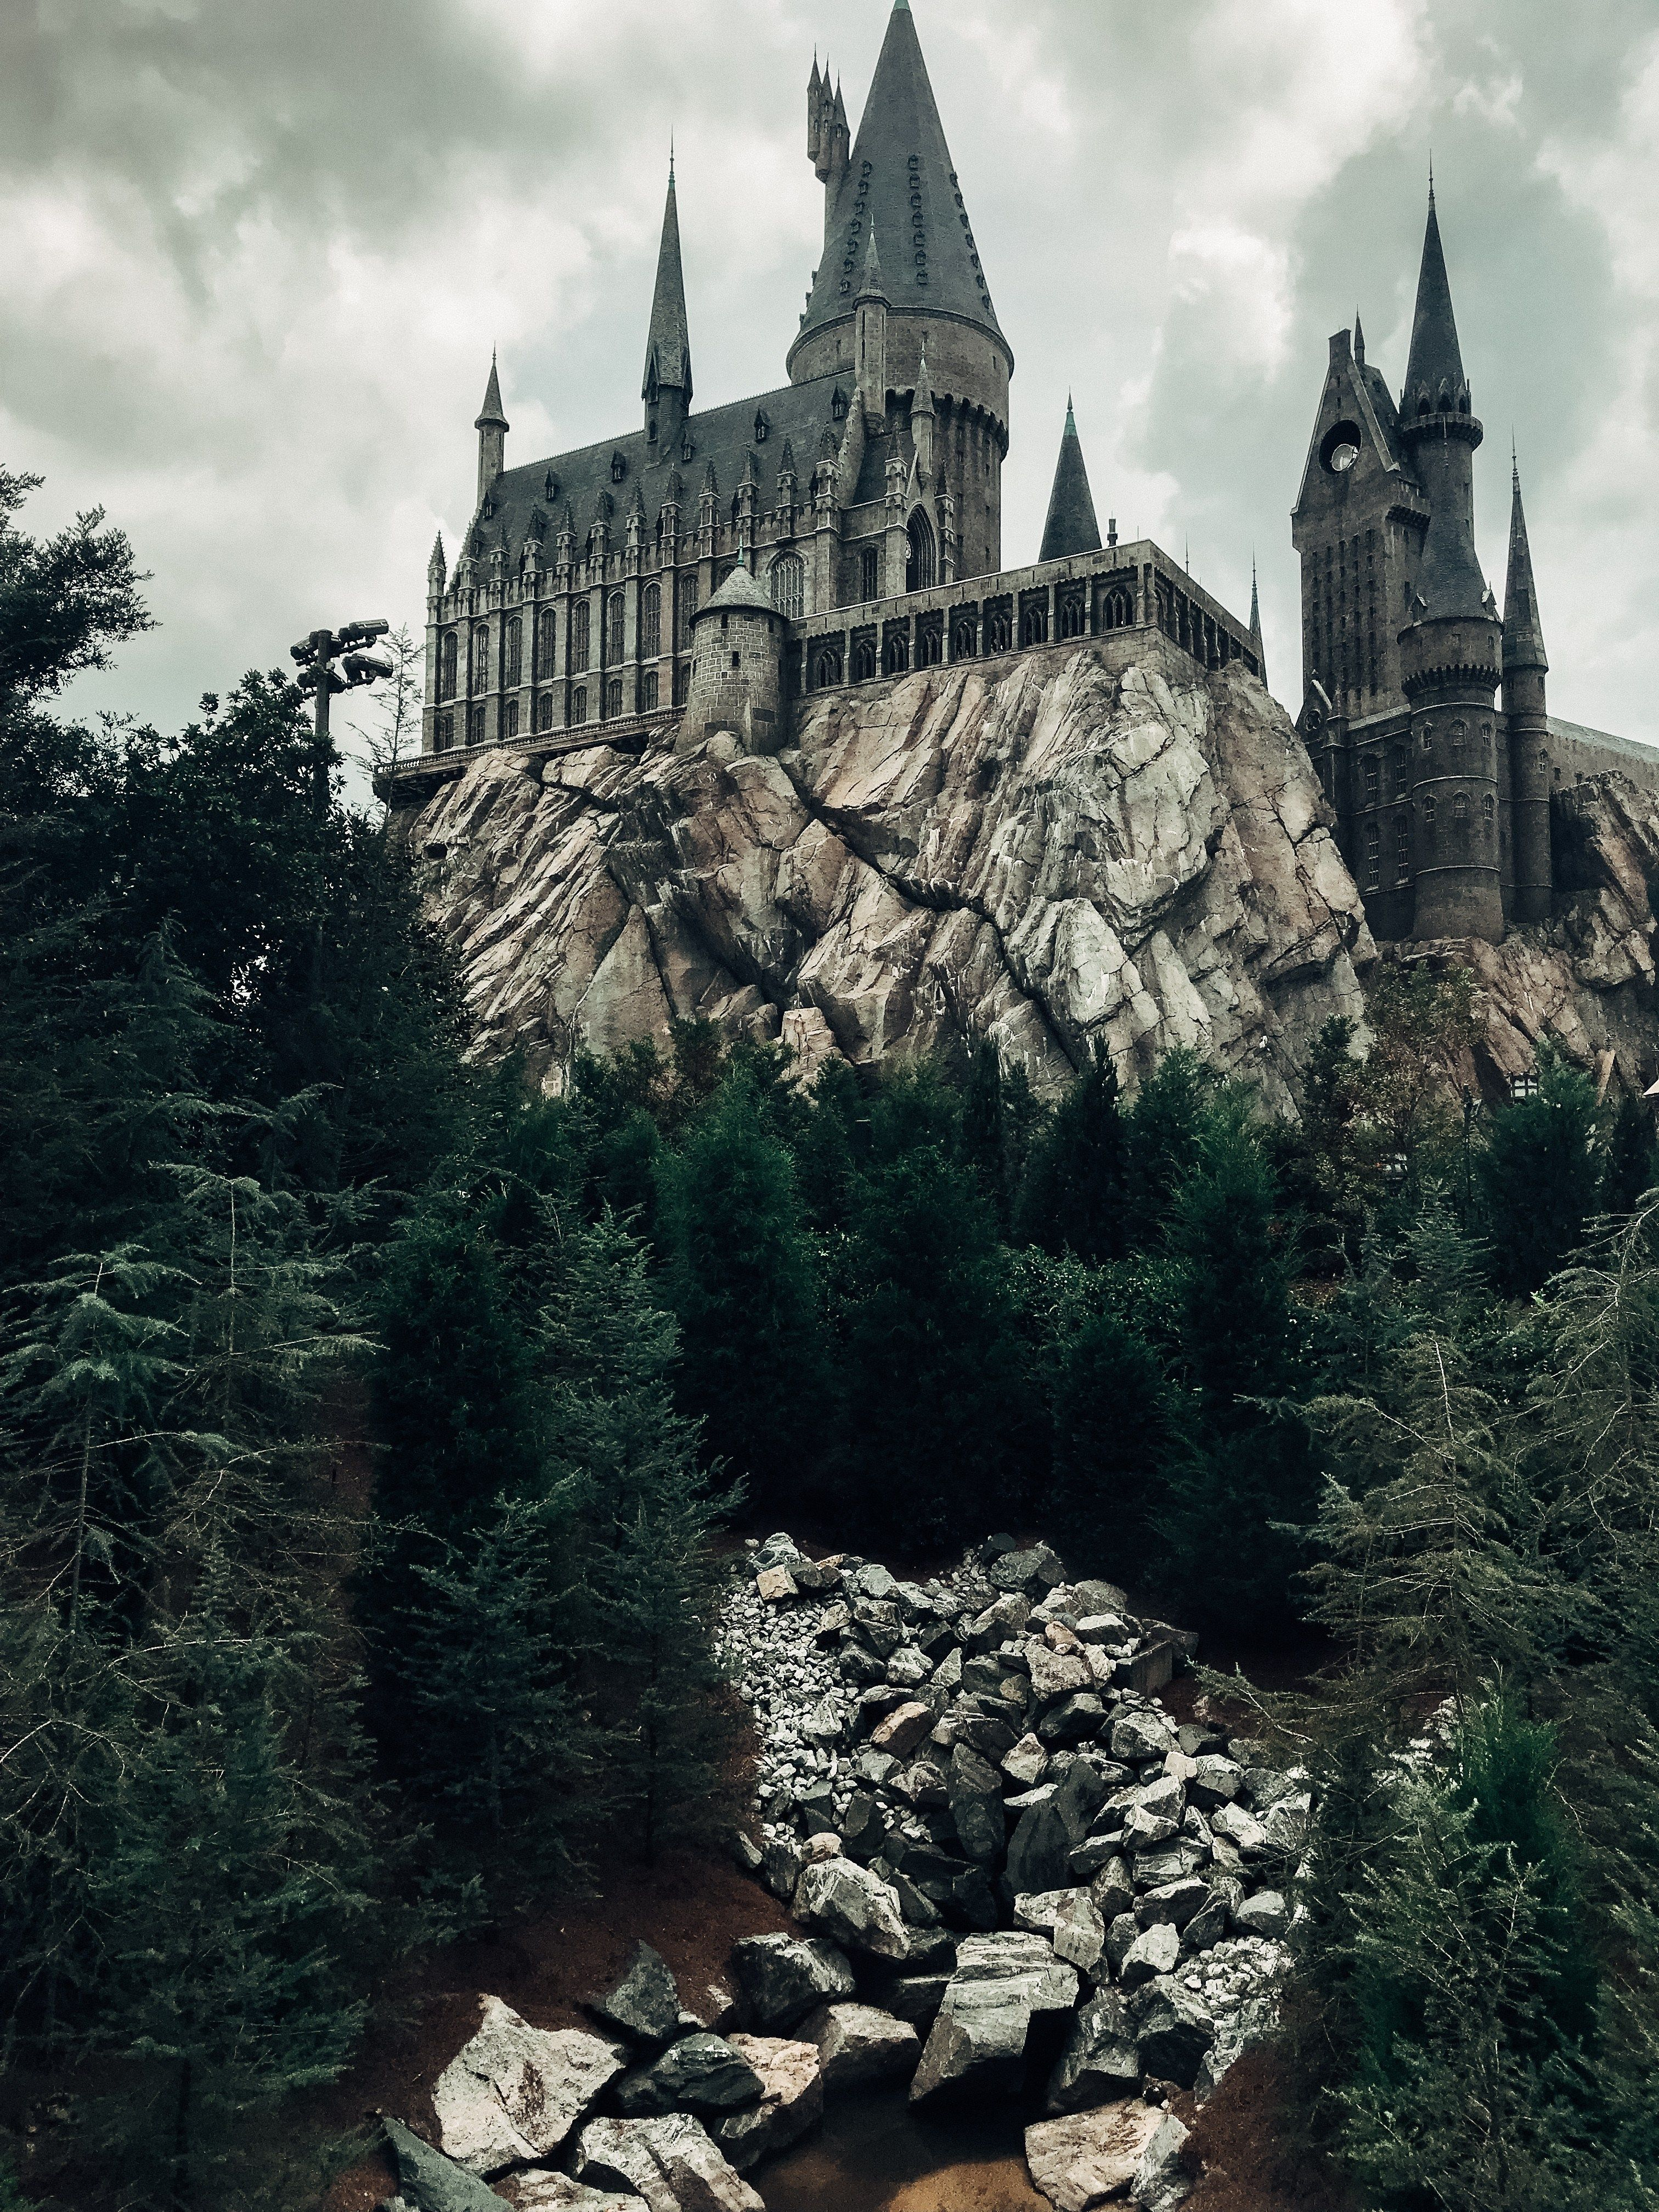 Hogwarts Castle A Magical Travel Guide For Every Witch Or Wizard S Next Visit To The Wizarding World Of H Orlando Travel Wizarding World Harry Potter Orlando